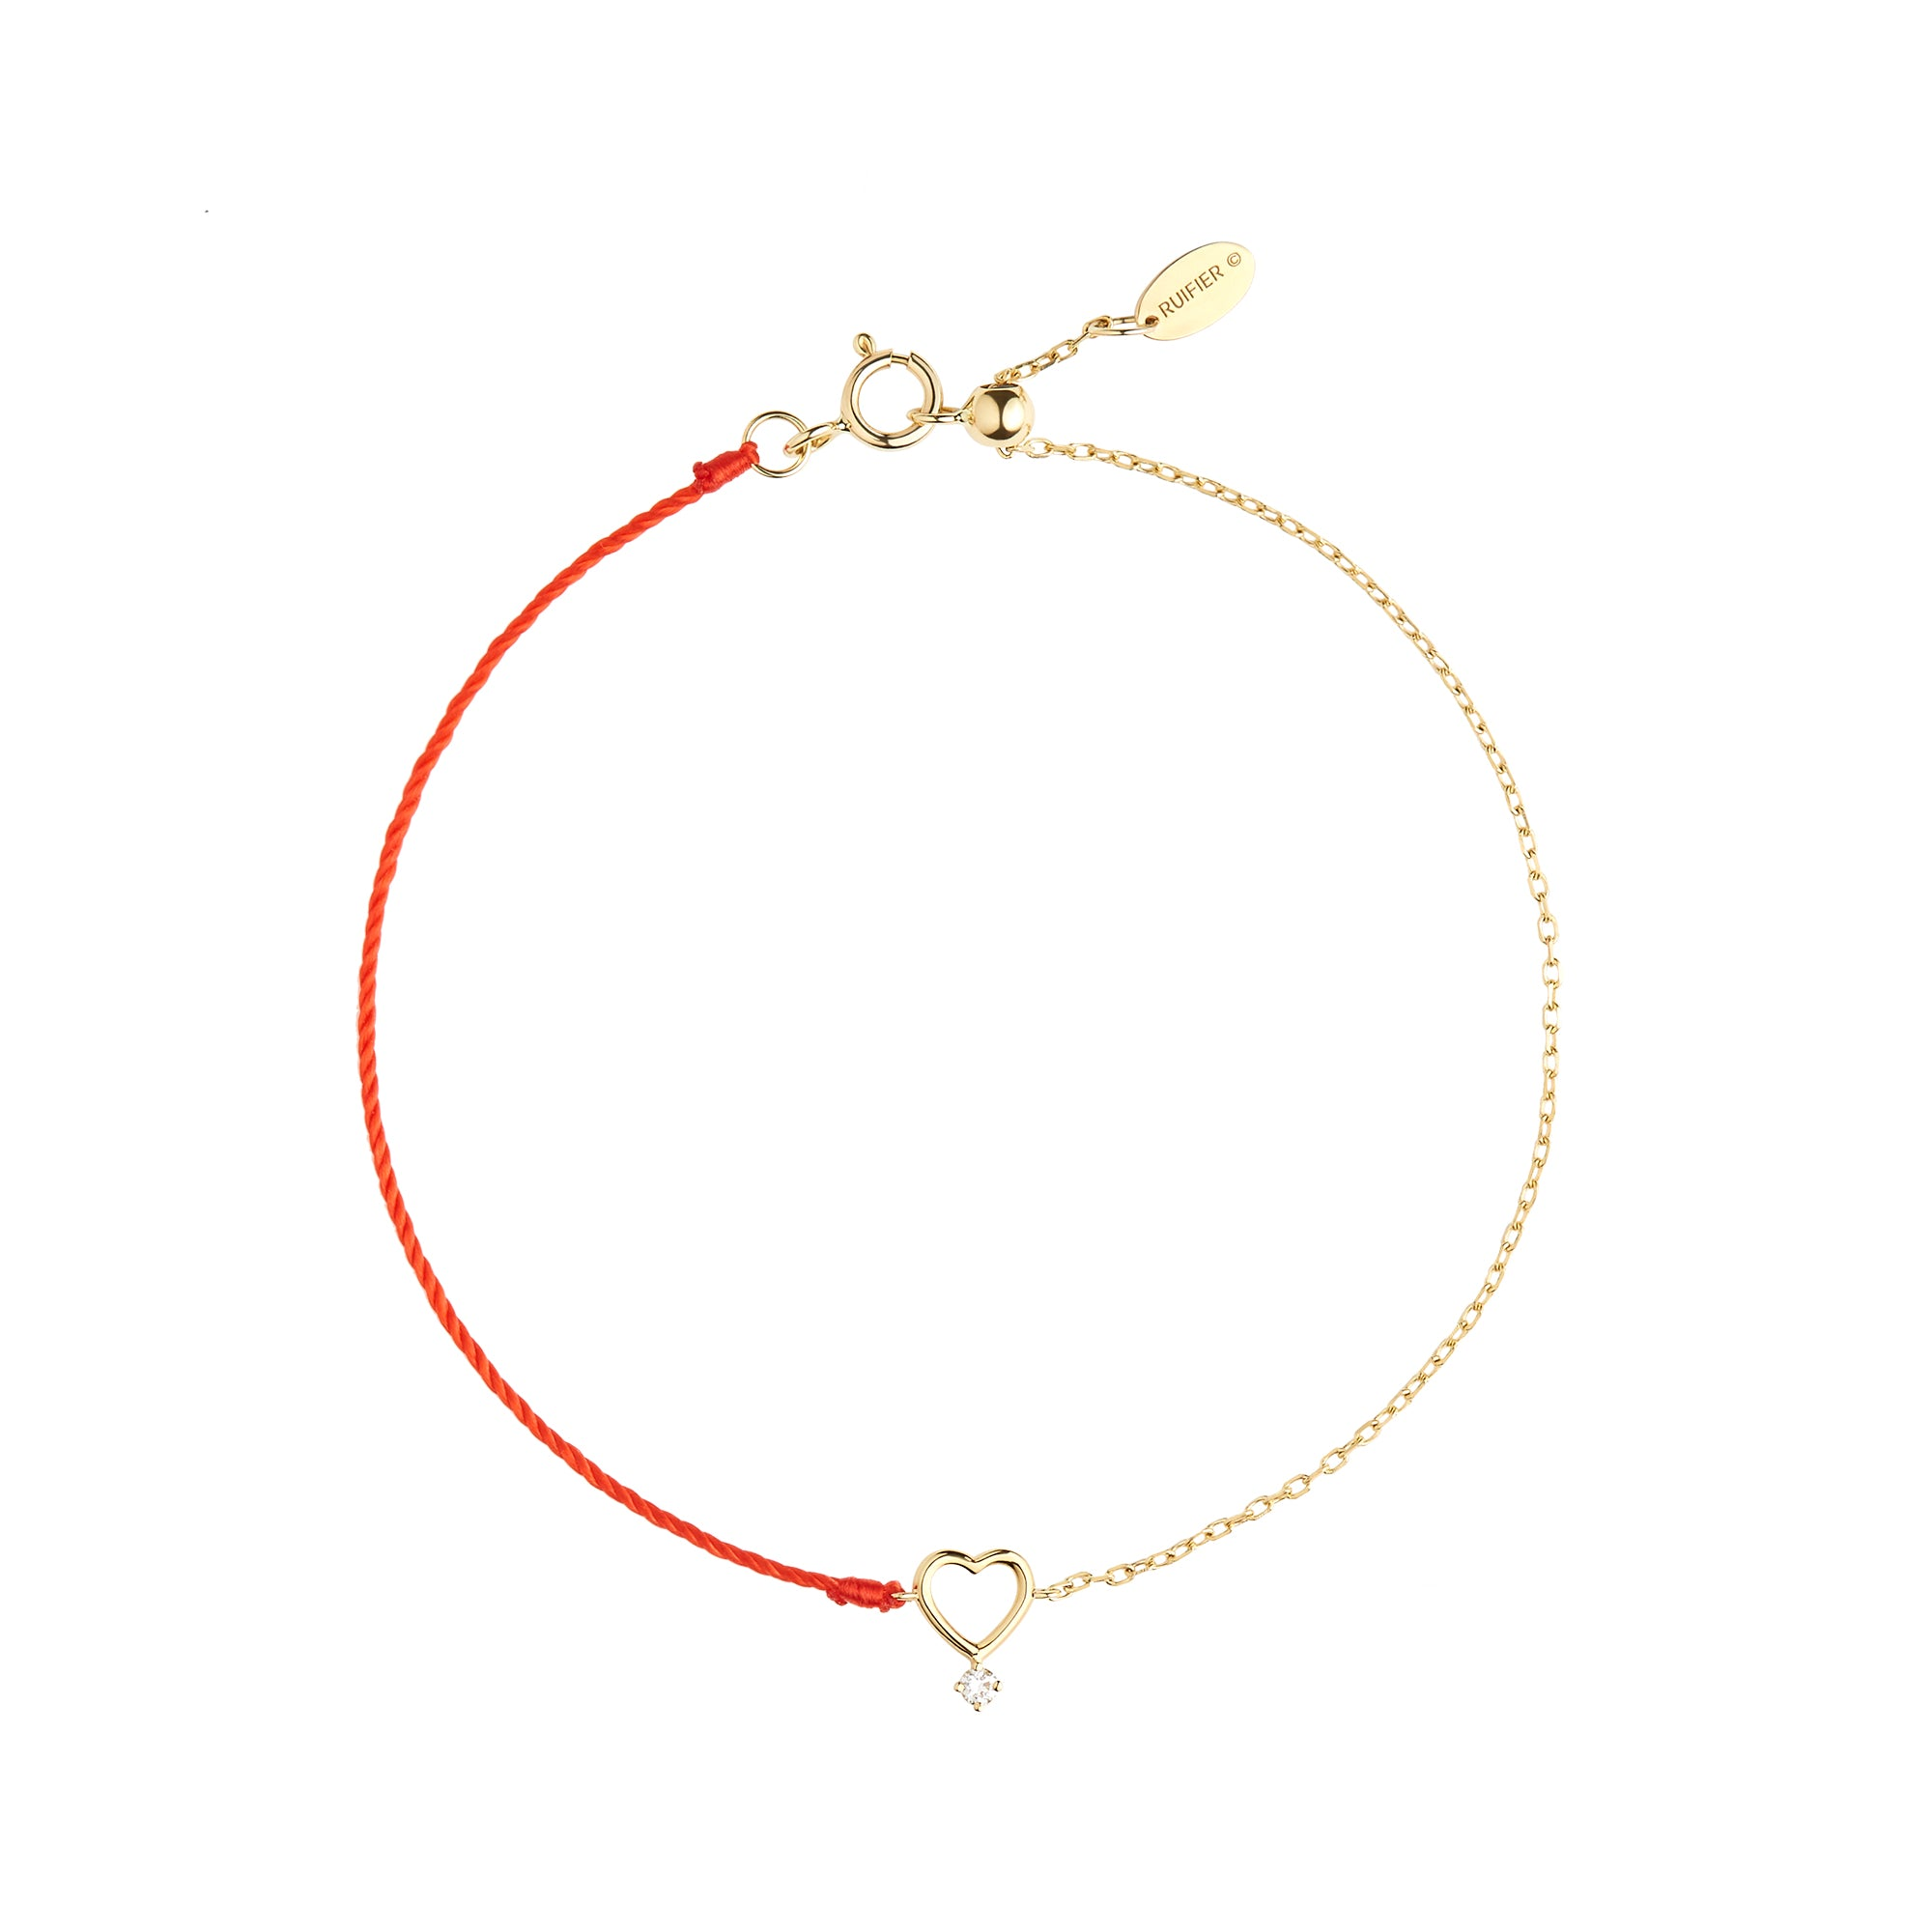 1HOME1 Scintilla Amore Hybrid Bracelet - RUIFIER